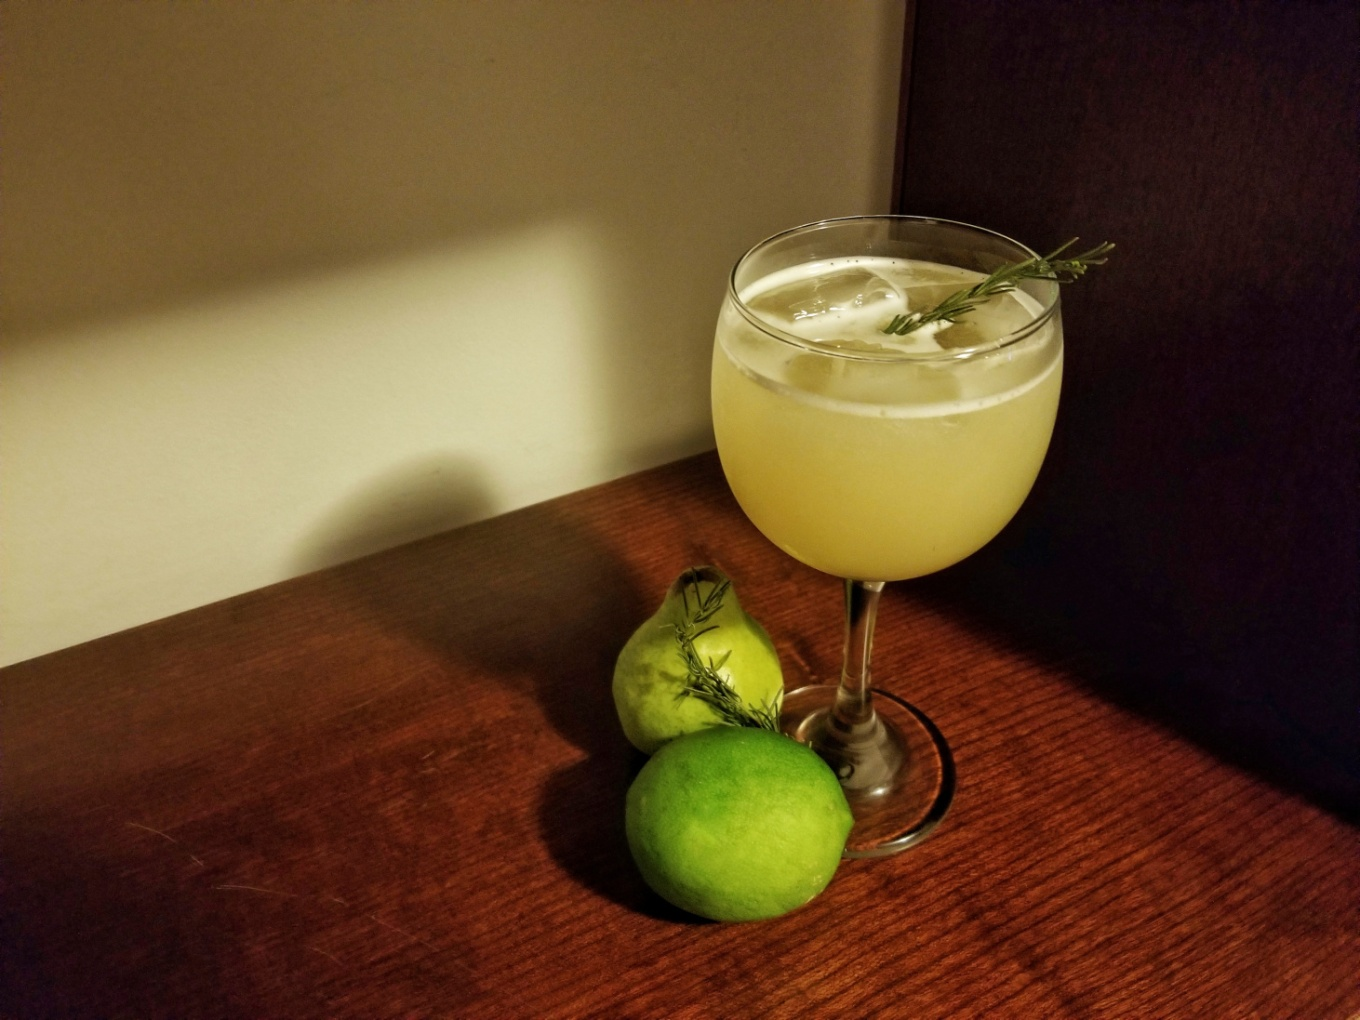 Sour Home Bartender